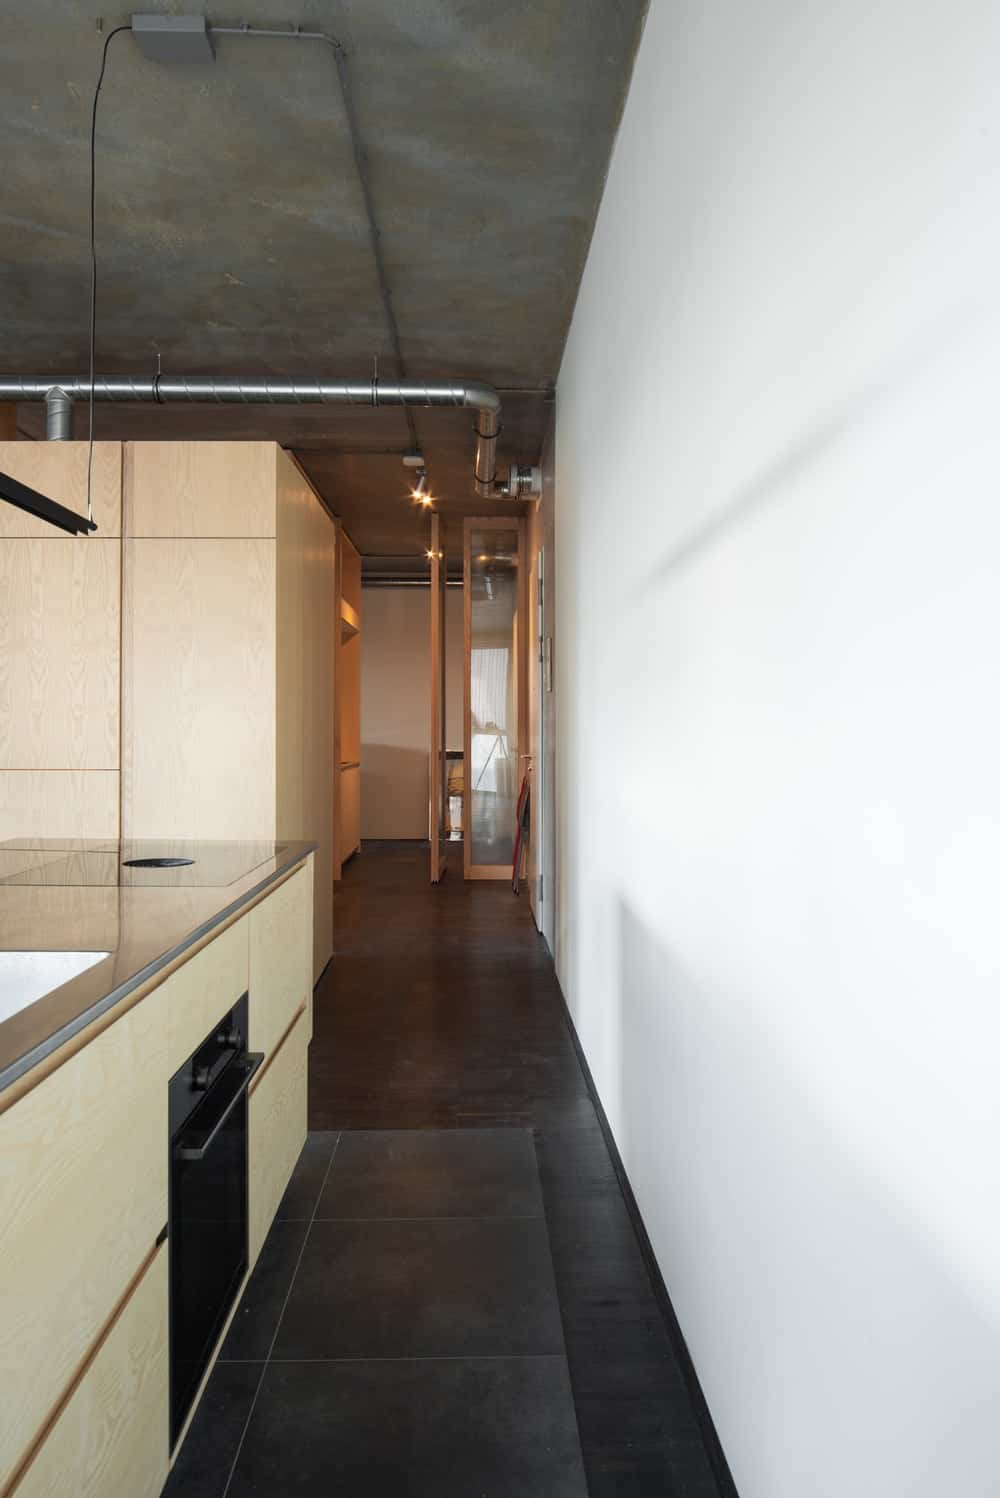 This is a look at the side of the kitchen cabinetry that leads to the pantry and shows more if the industrial-style feel of the ceiling with its exposed pipes.